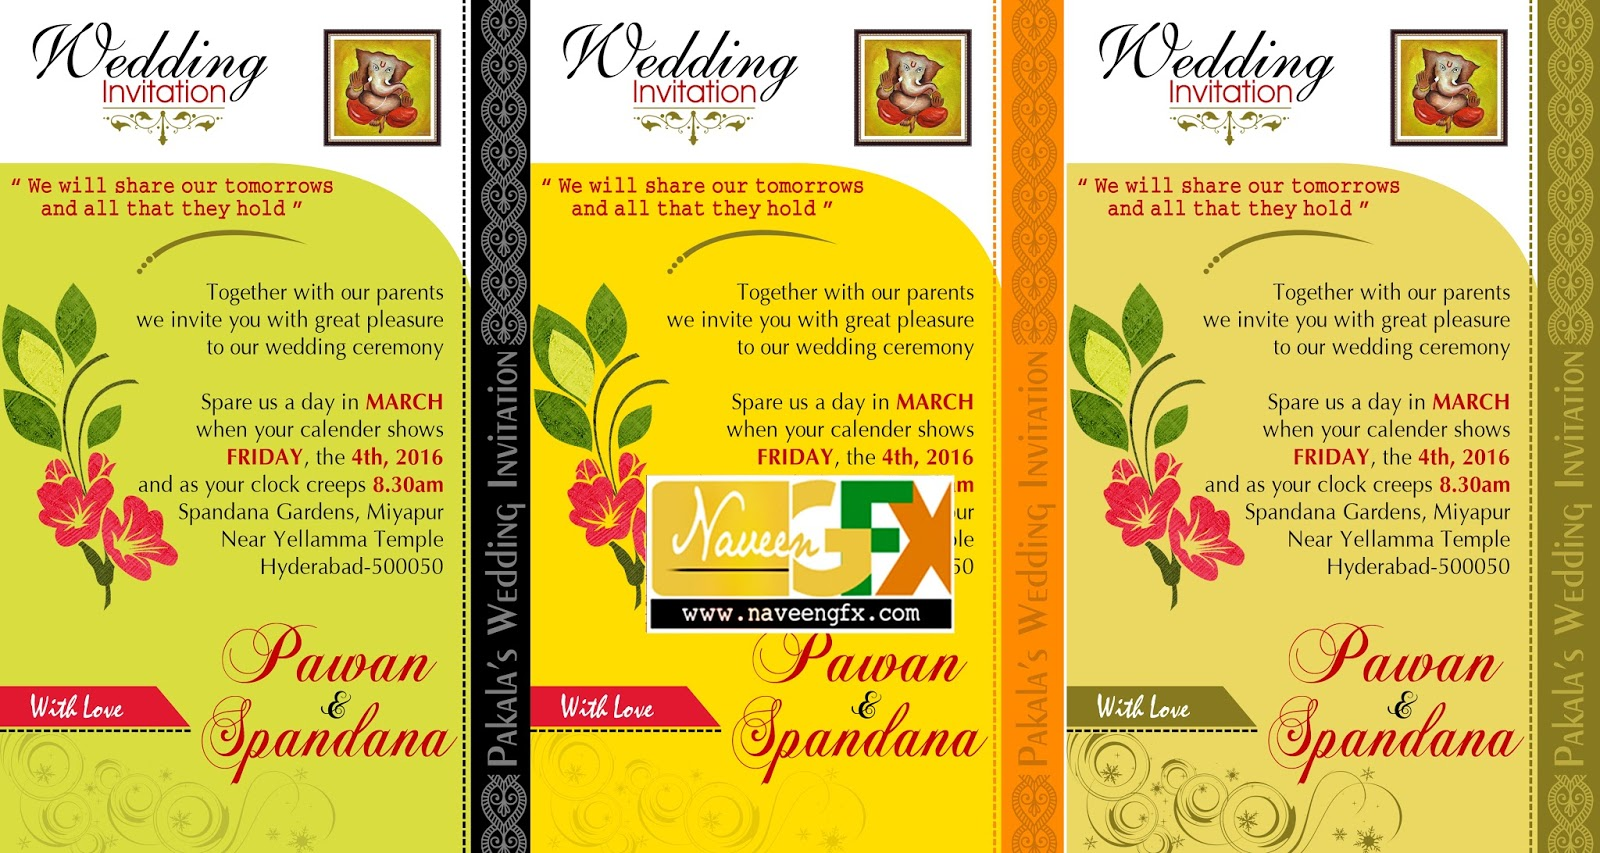 Indian Wedding Invitation Wording For Friends Card: Personal Wedding Invitation Wordings For Friends For